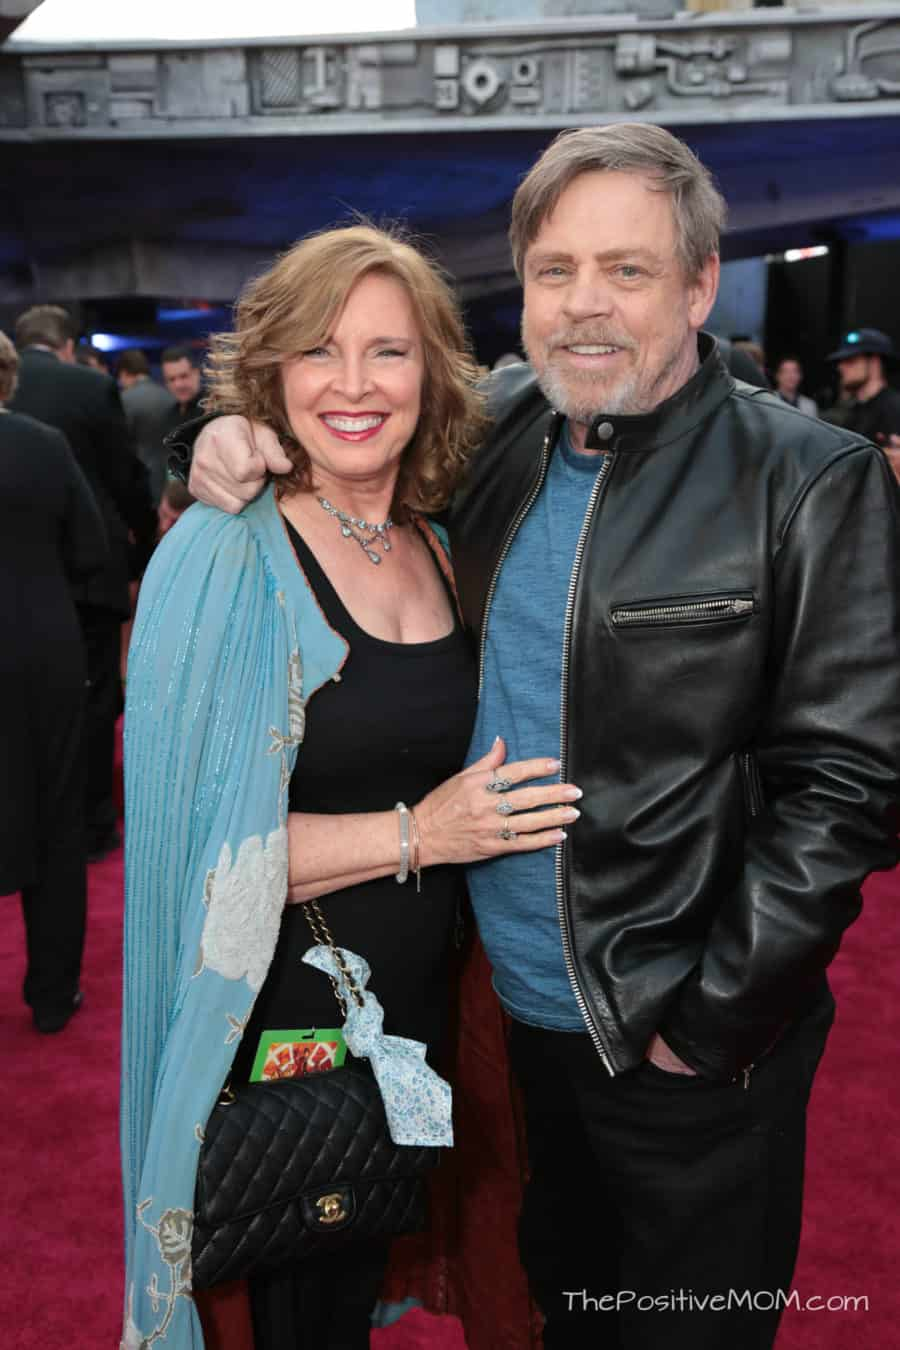 Marilou York and Mark Hamill attend the world premiere of ÒSolo: A Star Wars StoryÓ in Hollywood on May 10, 2018..(Photo: Alex J. Berliner/ABImages).